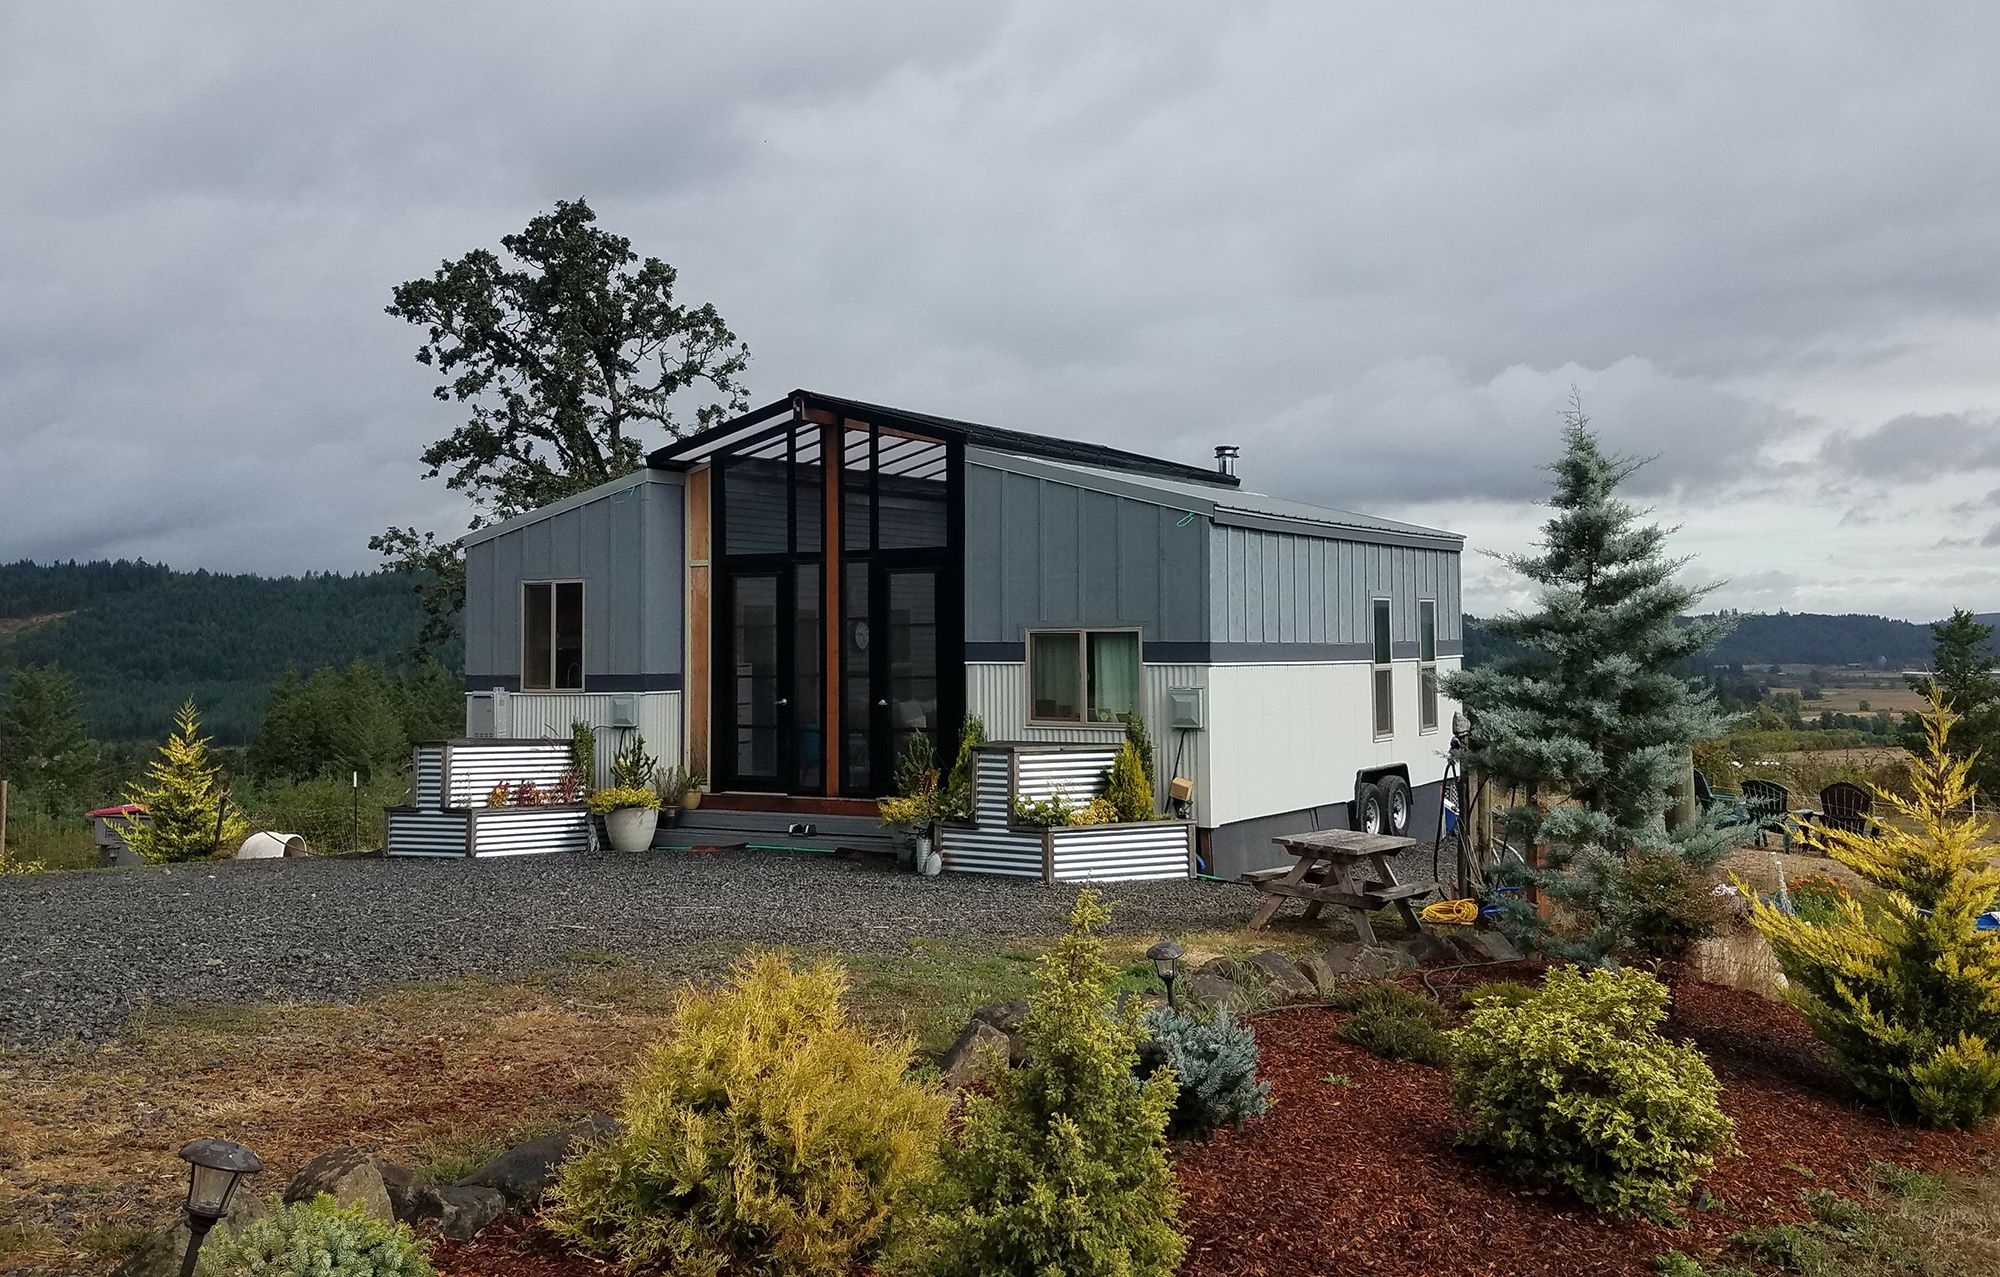 Tiny houses for sale on amazon prefab homes and cabin kits on amazon 2 tiny houses and a sunroom combine to fit family jeuxipadfo Image collections